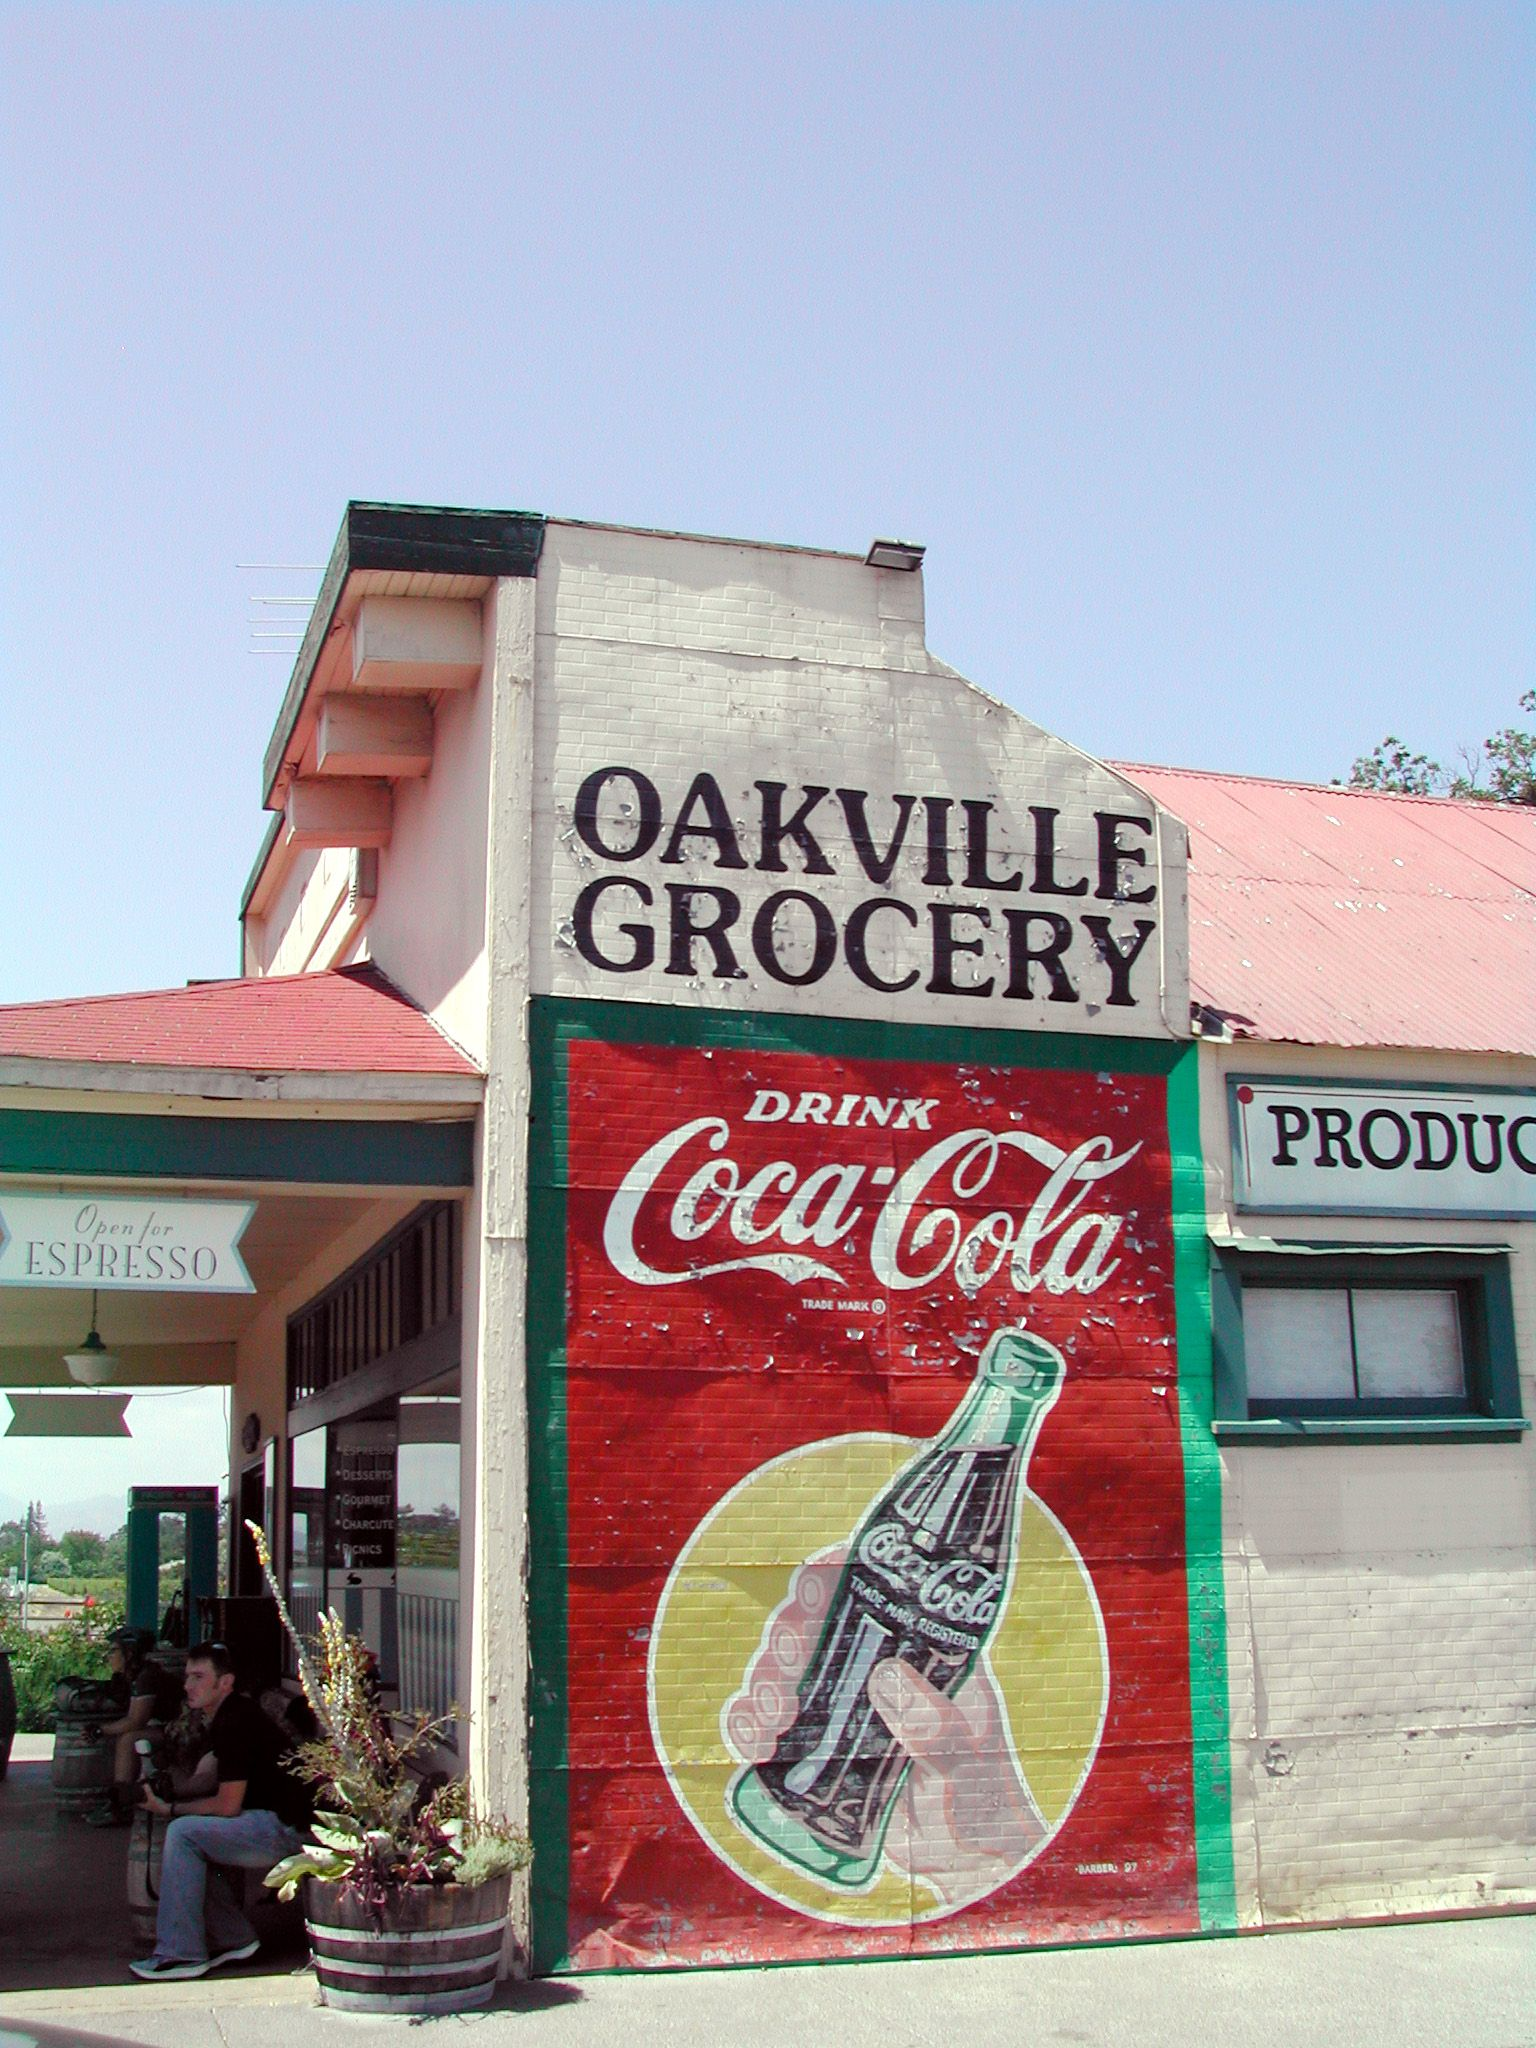 Oakville Grocery Store In Napa Valley The Absolute Best Sandwiches Ever Don T Spend Hundreds Of Dollars At French Laundry Go Here